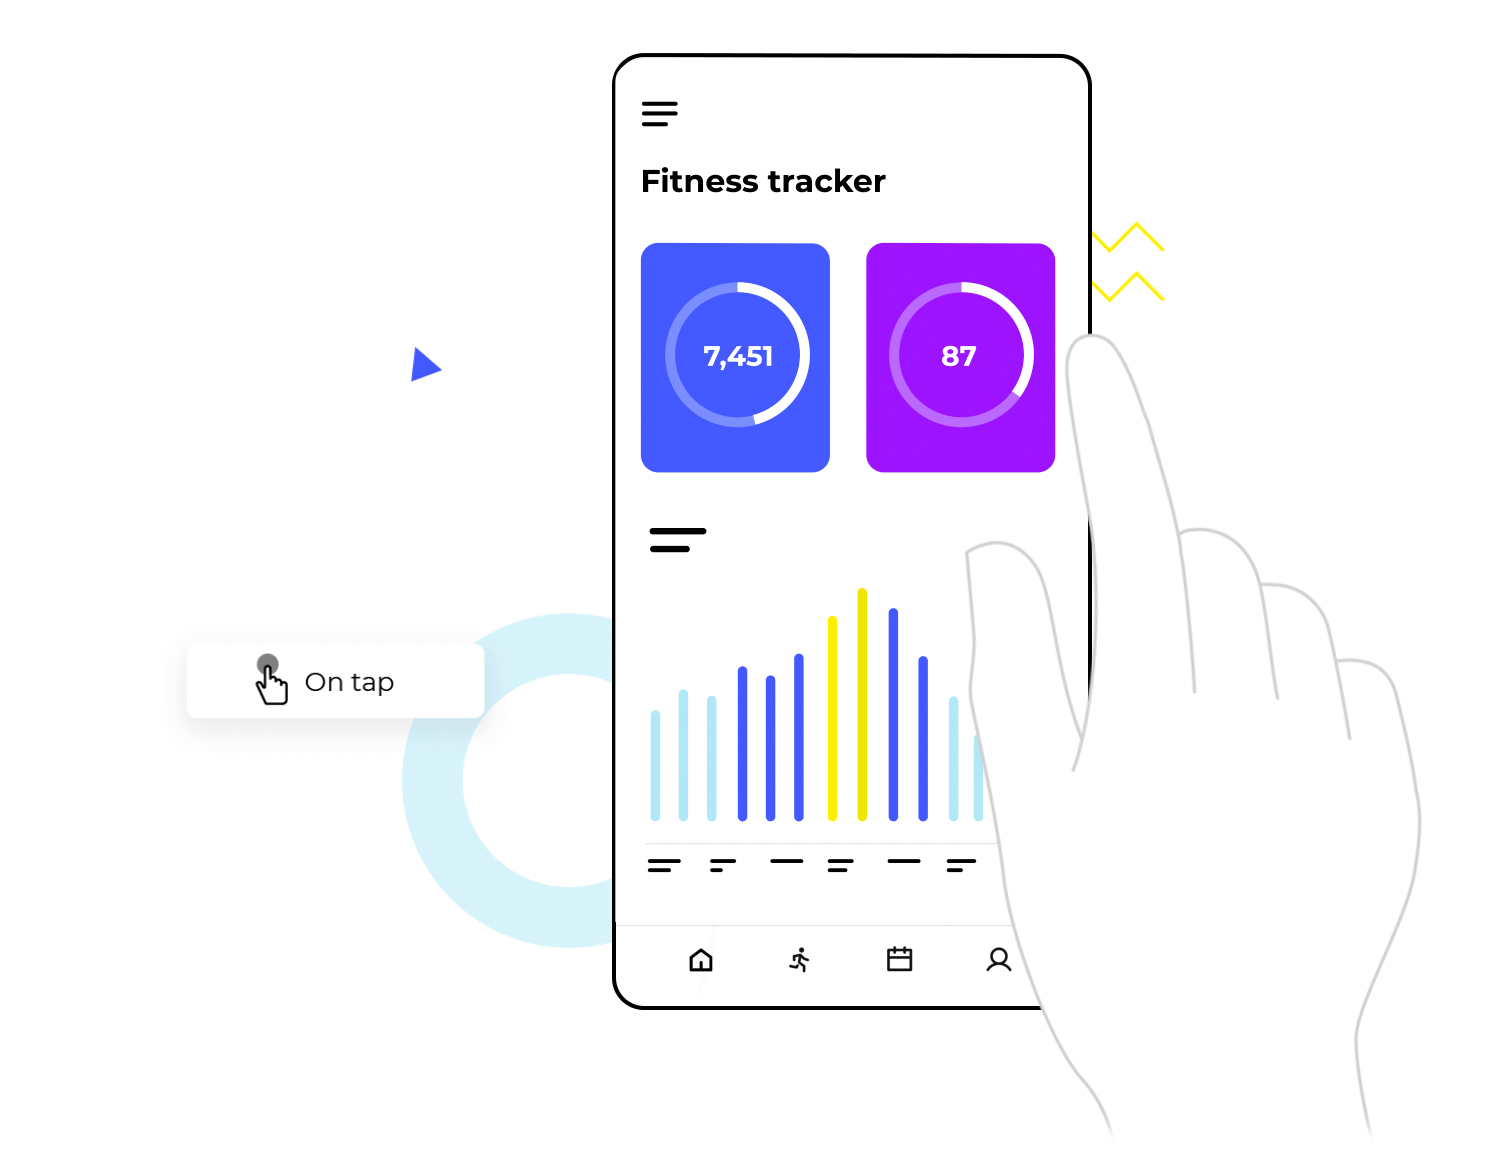 UX design tool for web and mobile app interactions